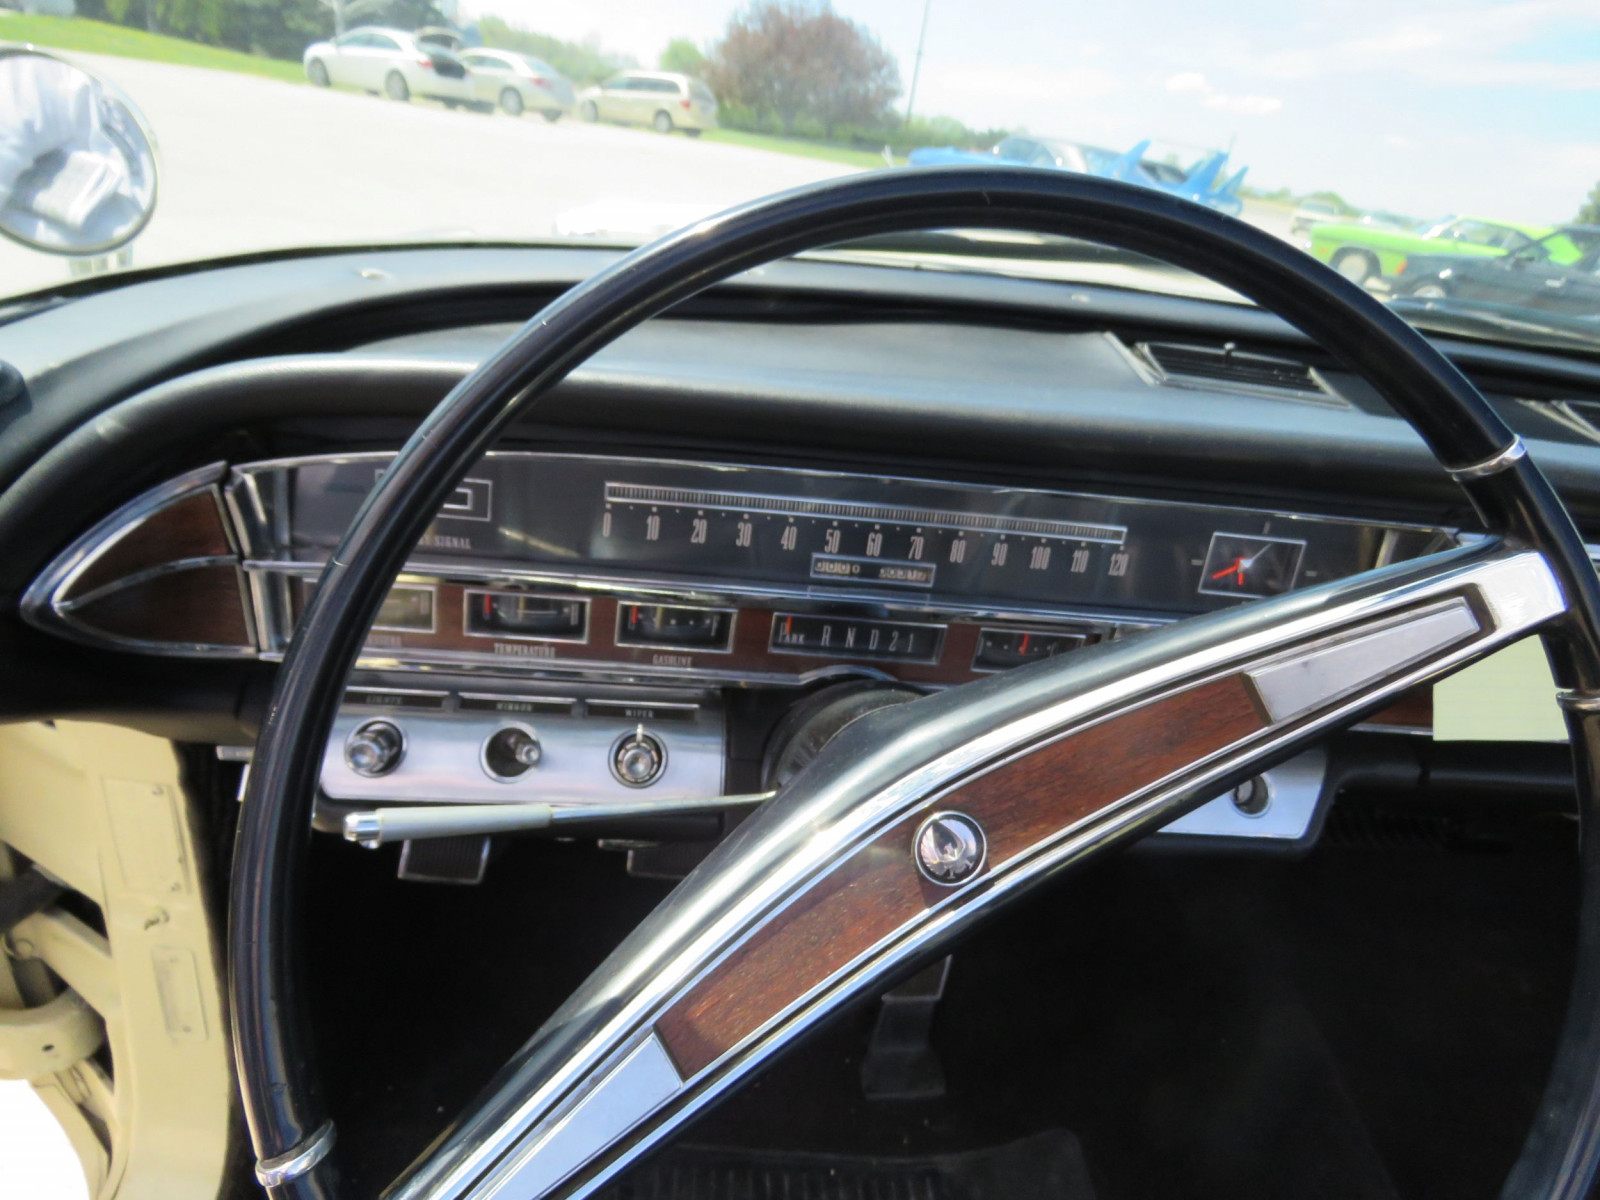 1966 Chrysler Imperial Crown Convertible - Image 15